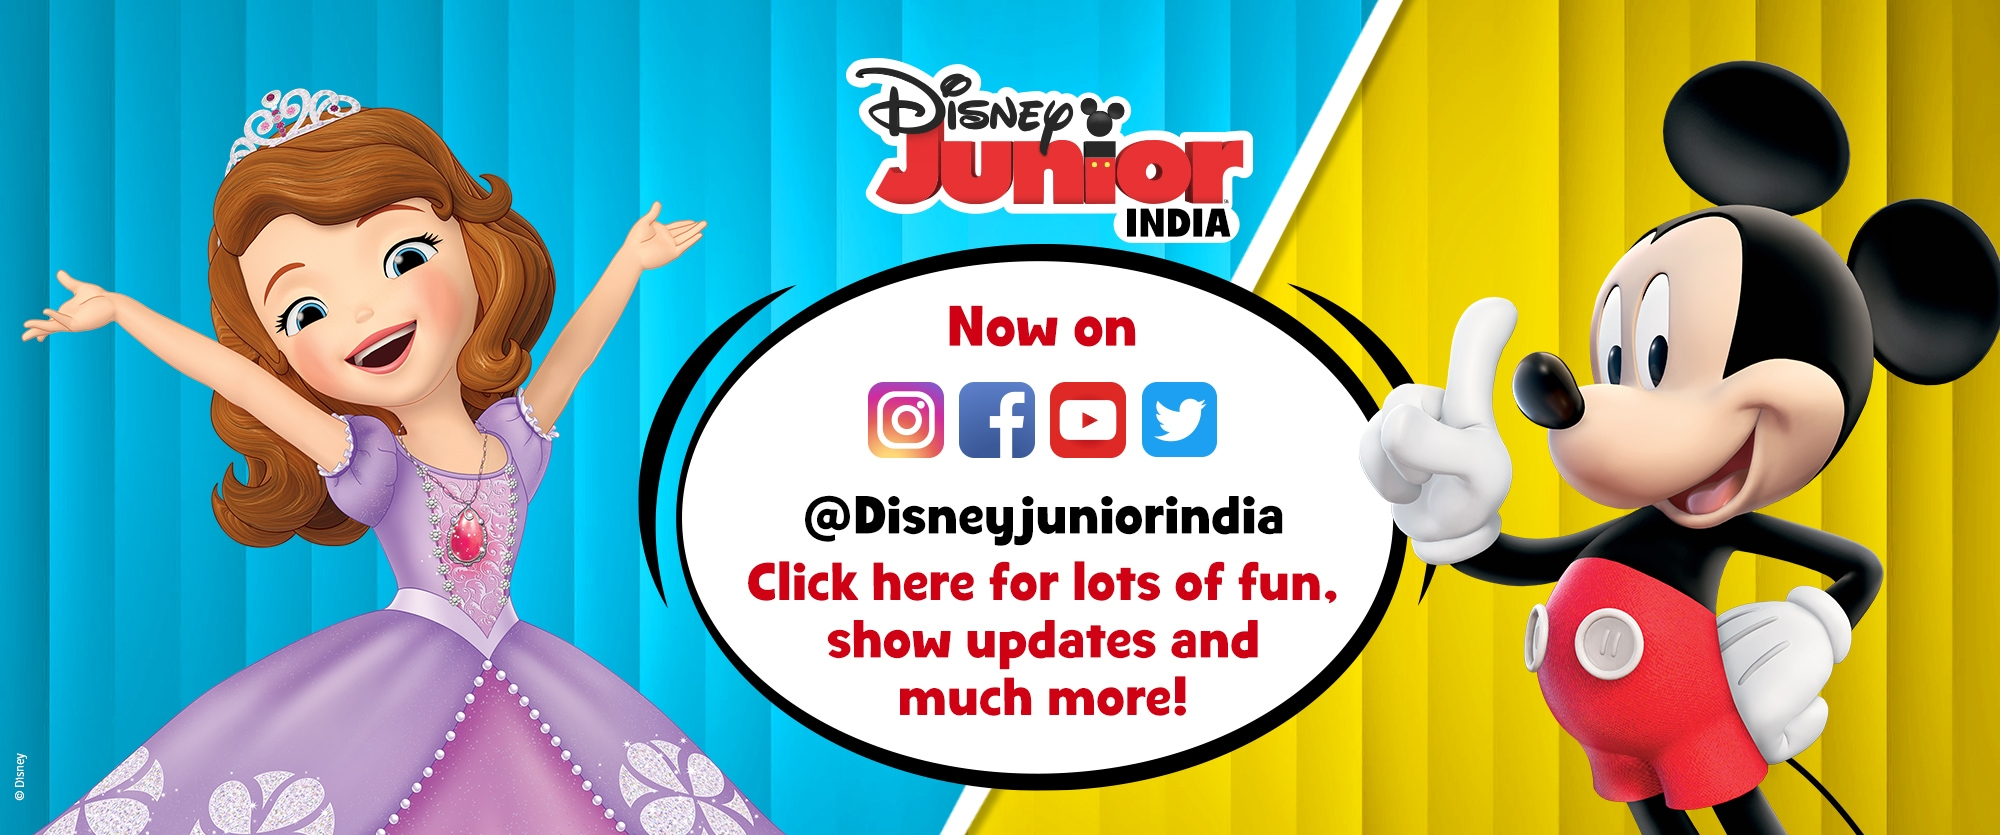 Disney Junior India